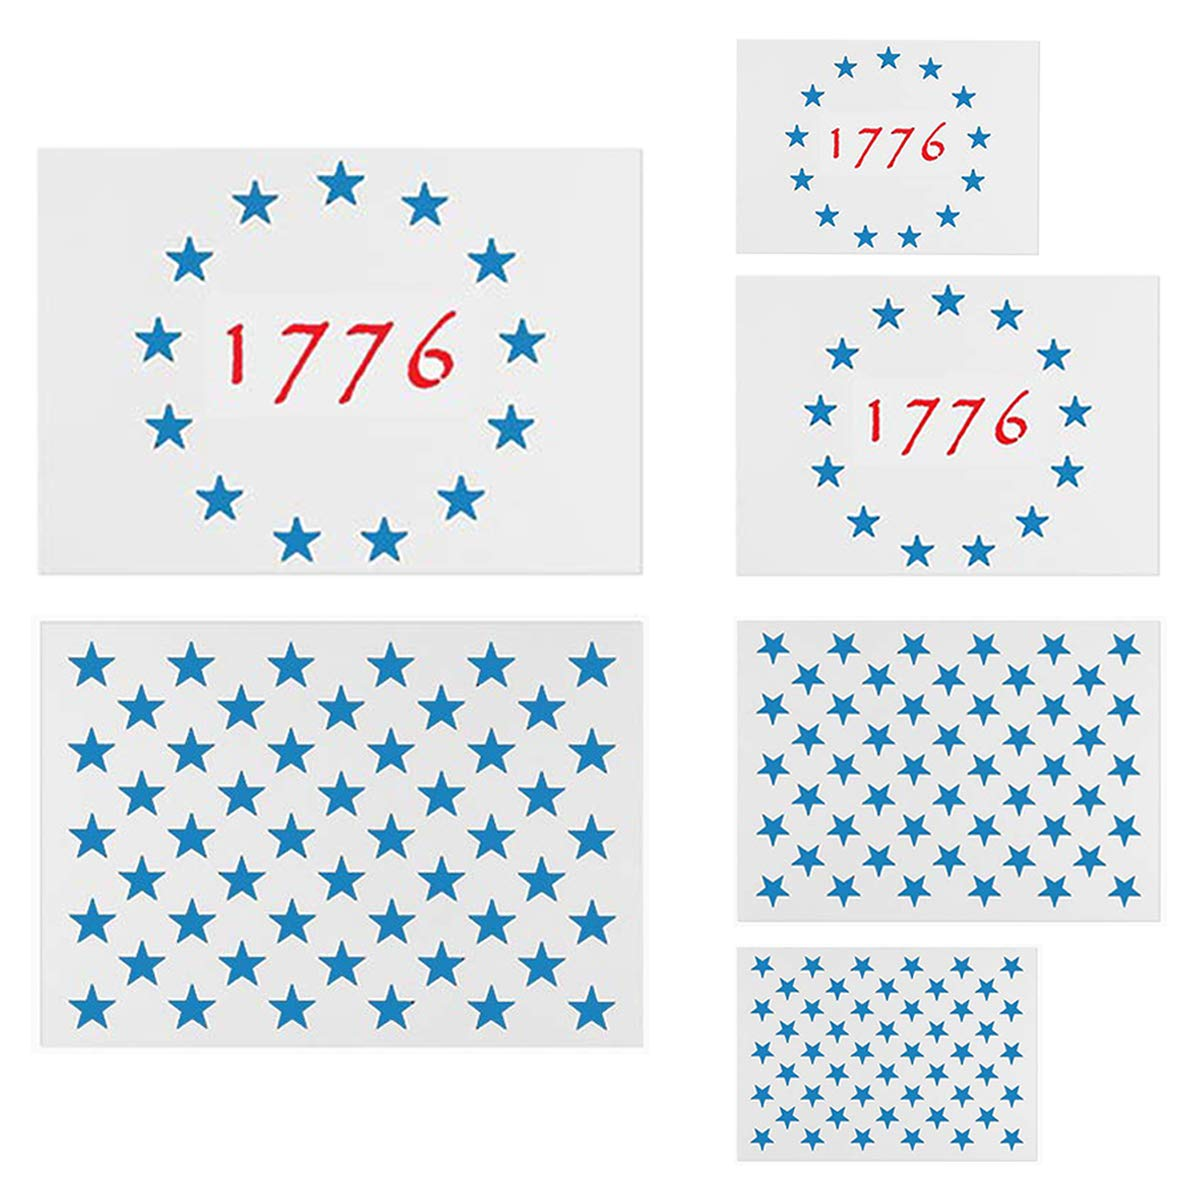 American Flag Star Stencil Templates - 6 Pack 50 Stars 1776 13 Stars Flag Stencils for Painting on Wood and Walls, Reusable Plastic Stencils in 3 Sizes for Wood Burning & Wall Art by REOLAN